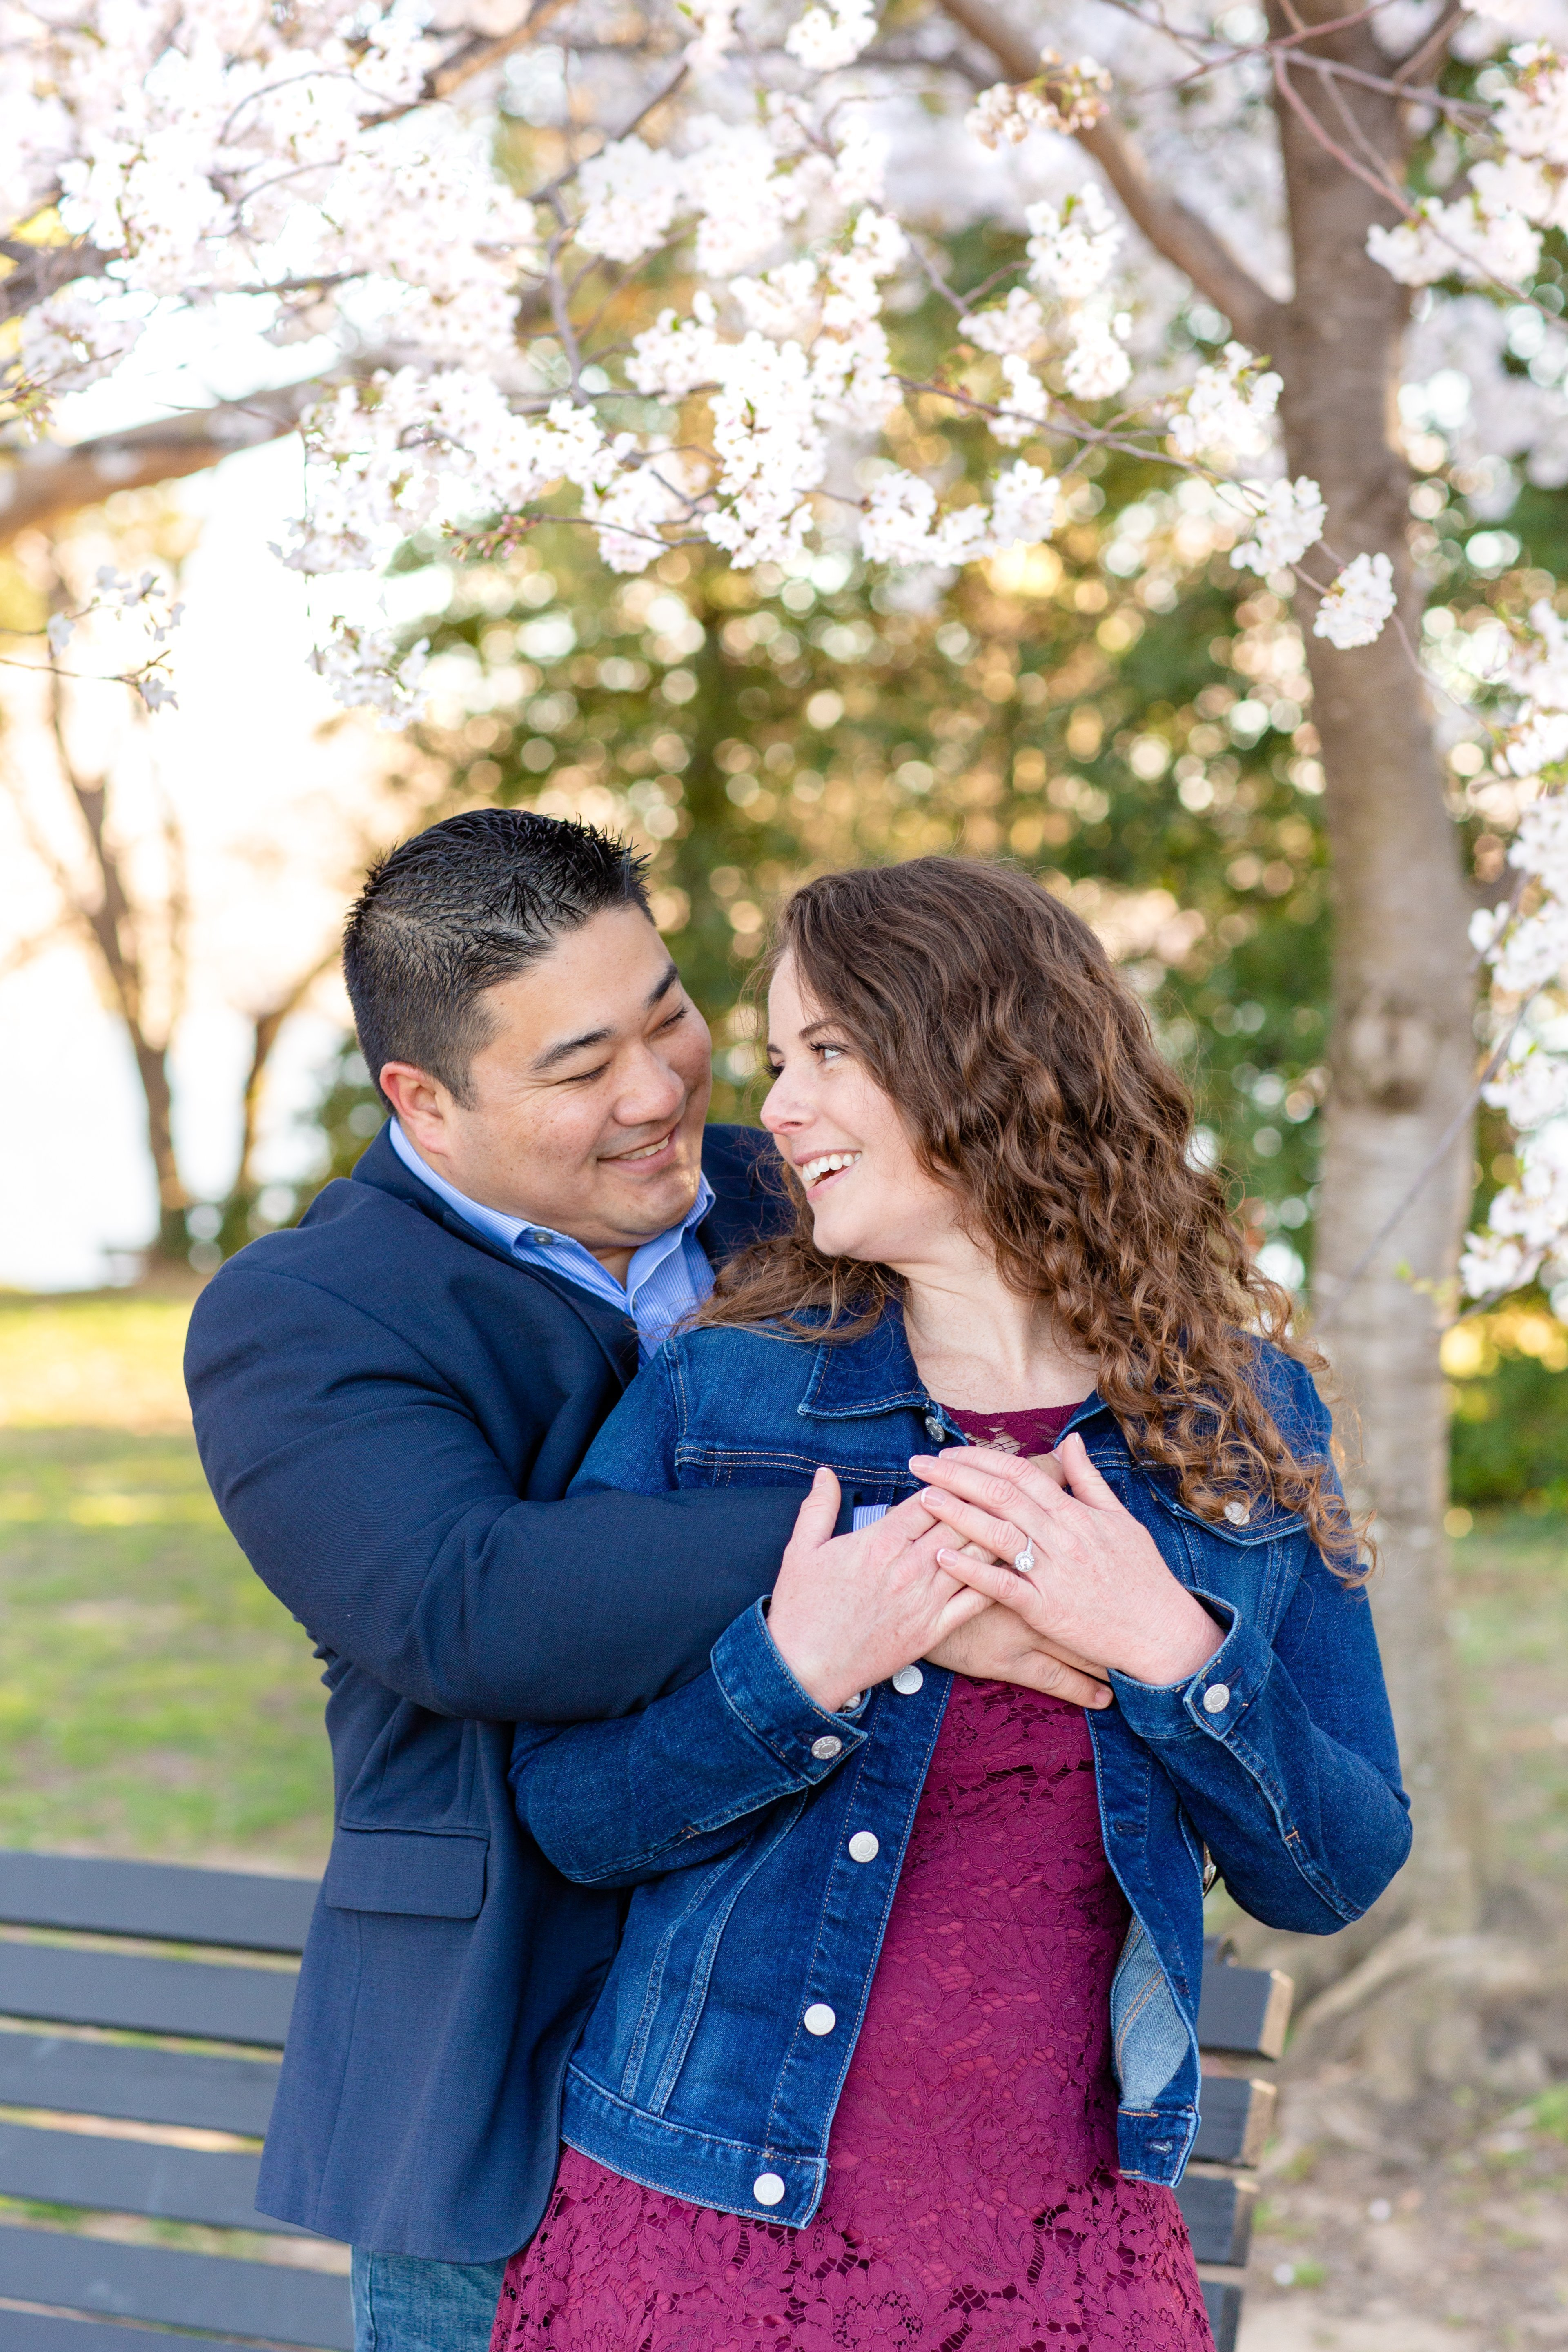 Engagement Photography Fredericksburg VA Richmond VA DMV area Washington DC - MainFocus